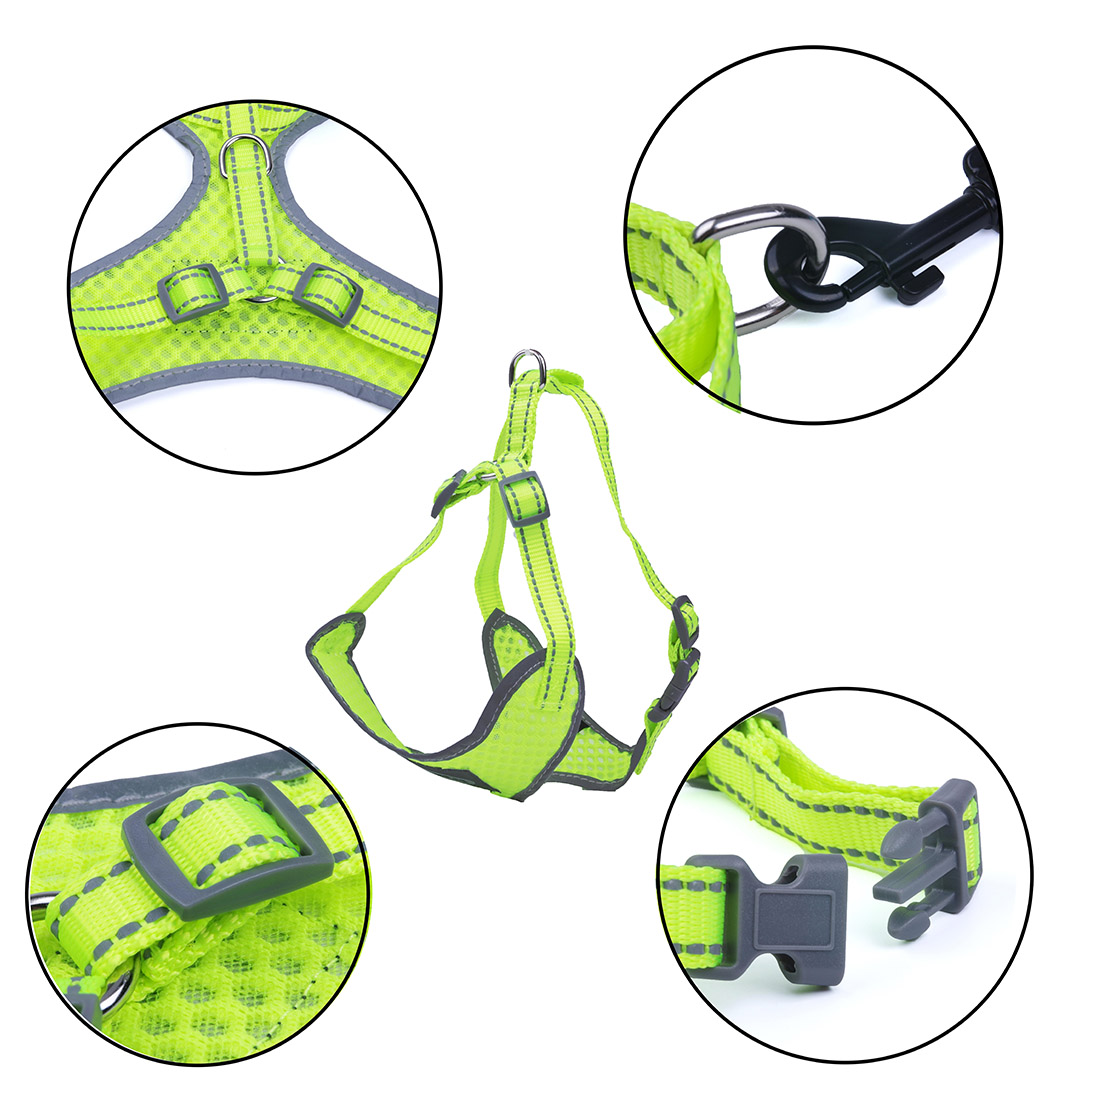 Breathable-Mesh-Puppy-Dog-Harness-Vest-Adjustable-Soft-Walk-Collar-No-Pull thumbnail 32